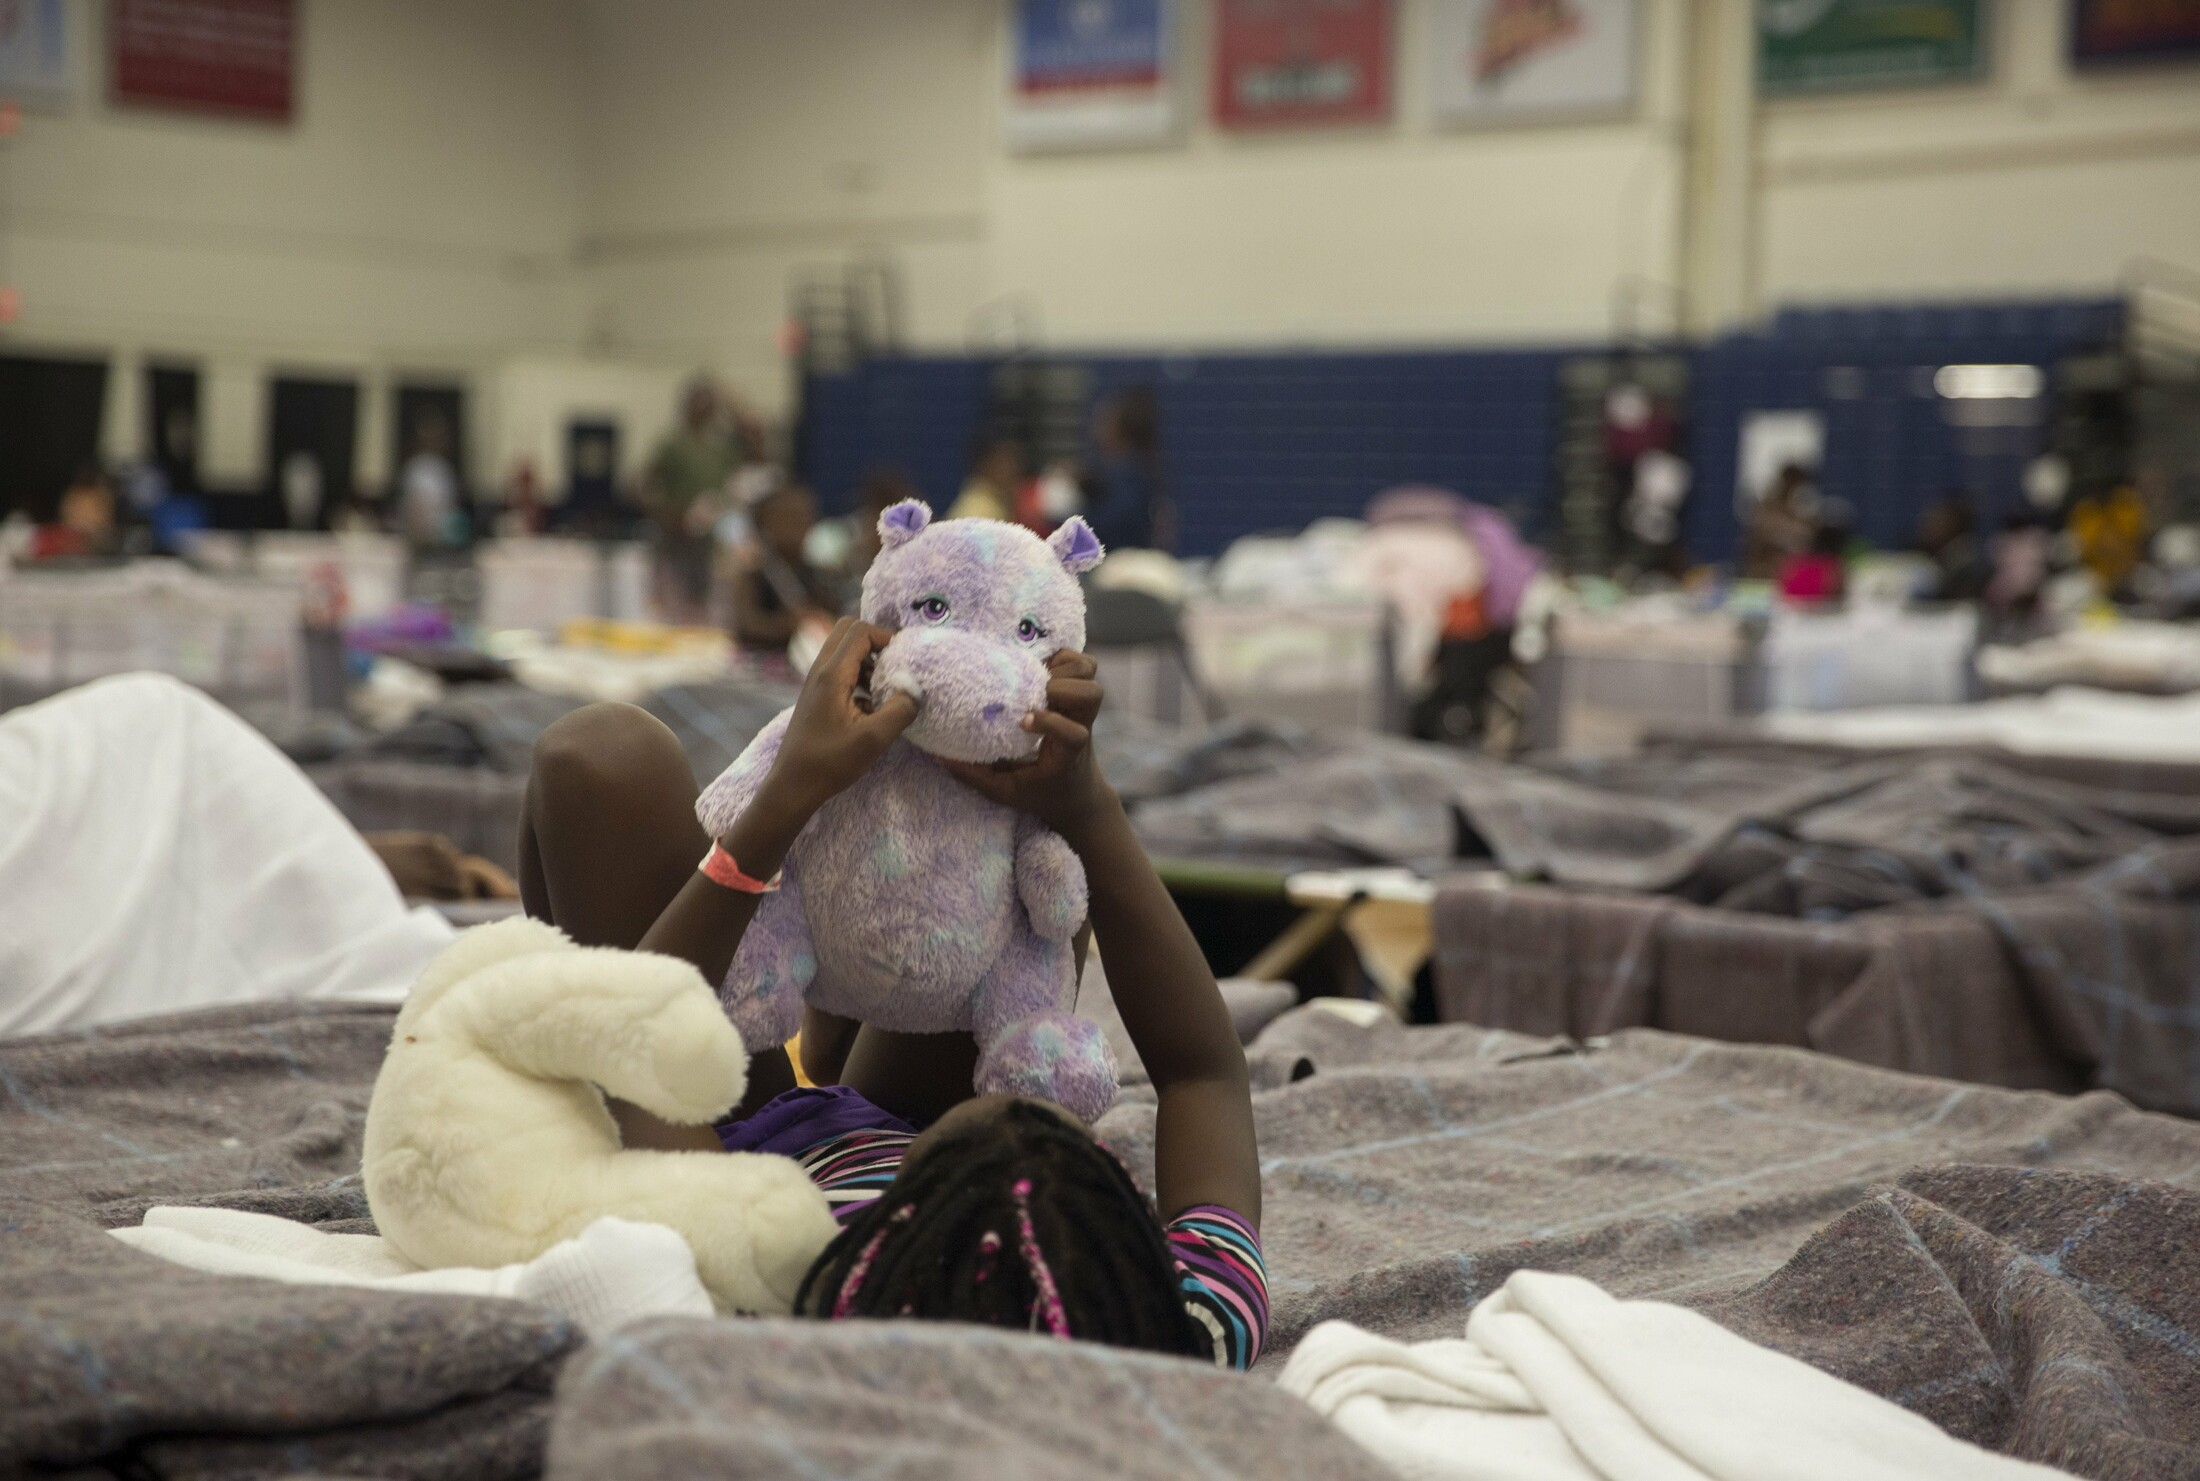 A girl plays with a stuffed animal on her cot at the Portland Expo. Asylum seekers, mostly from Angola and the Democratic Republic of the Congo, have been living at the temporary shelter at the Portland Expo for about a month. Brunswick is trying to make arrangements to host 30 to 40 people in housing at Brunswick Landing.